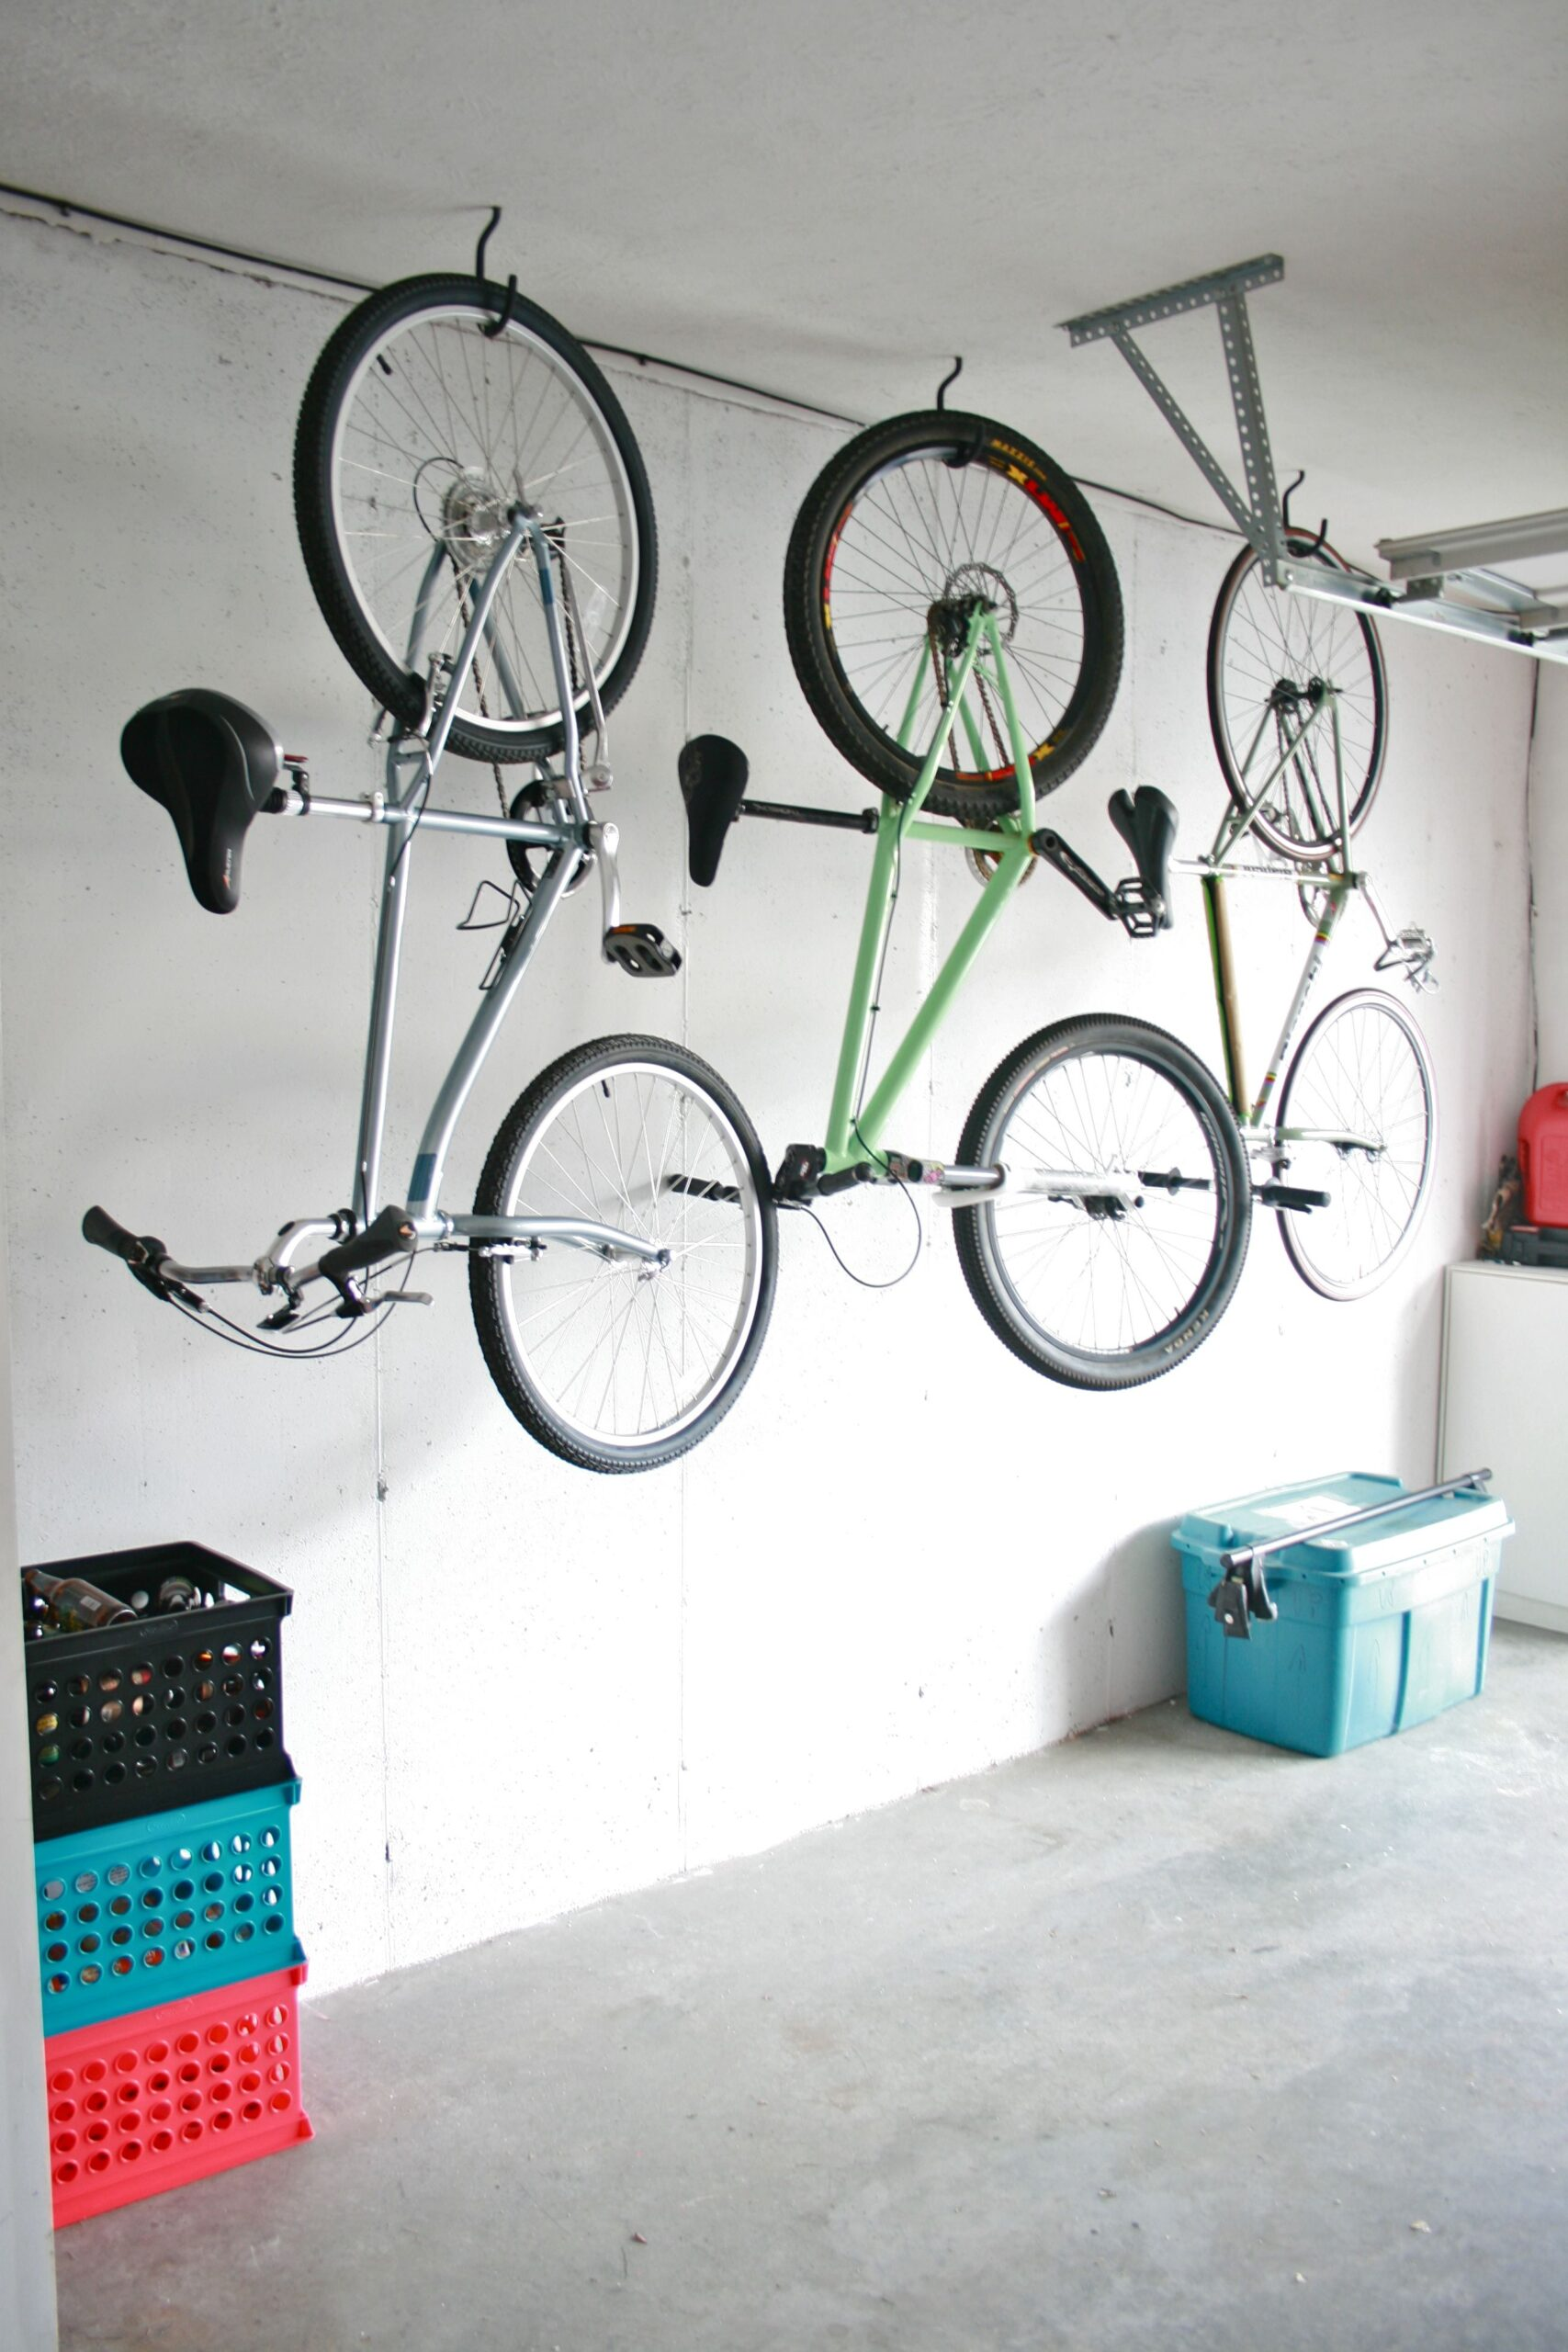 Bikes hanging from ceiling in garage